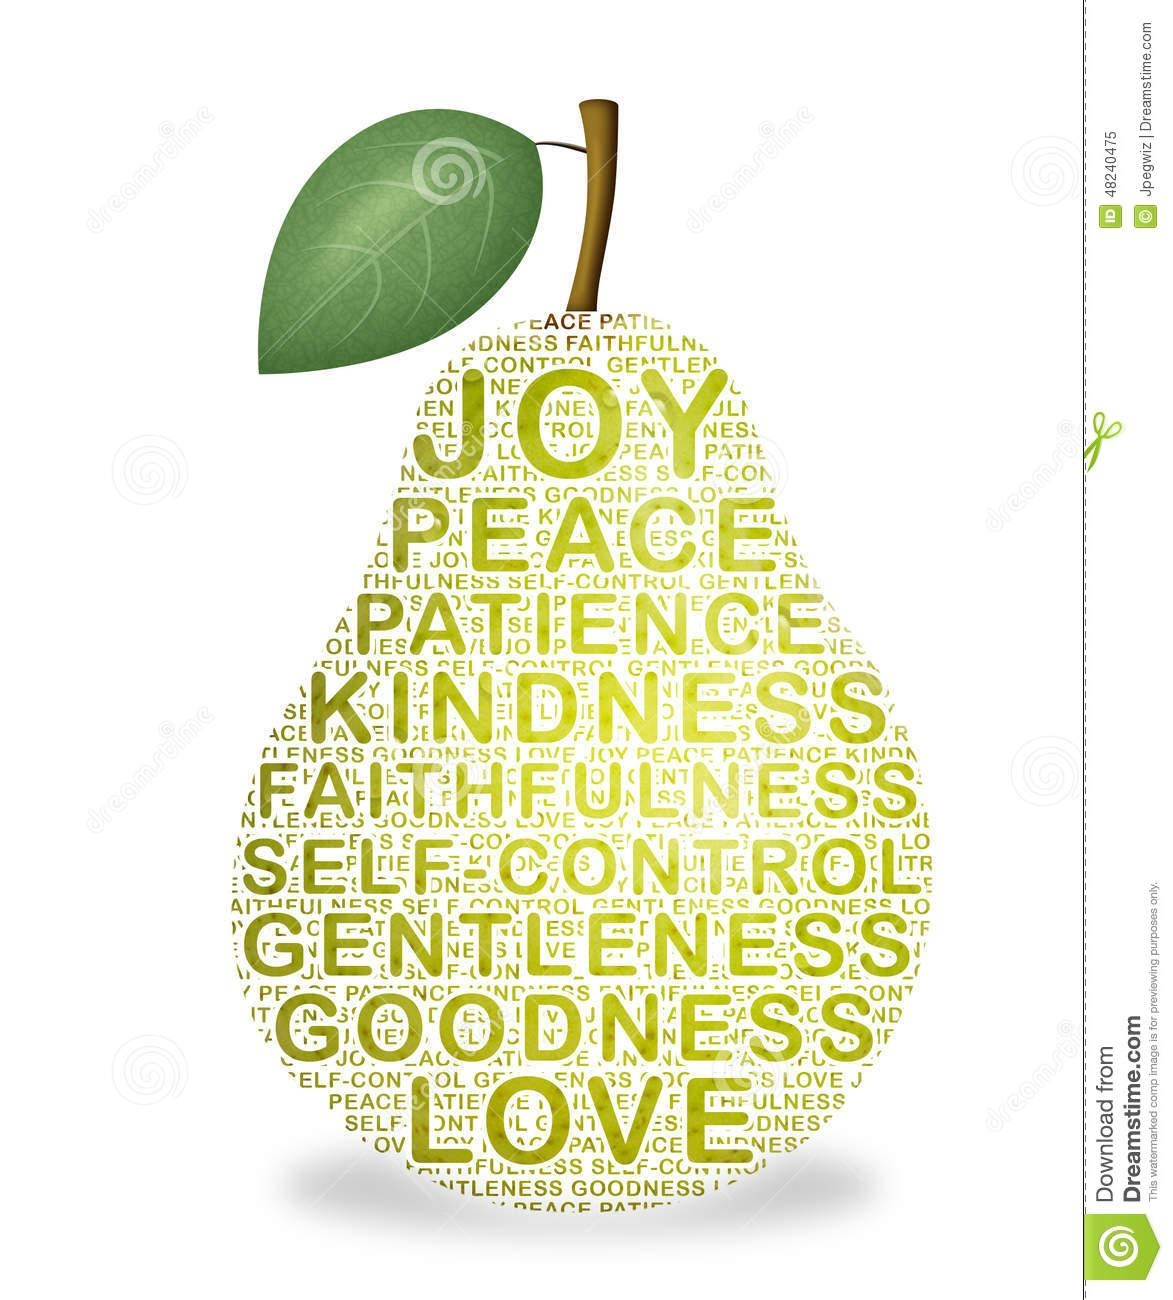 Fruit Of The Spirit Stock Illustration – Image: 48240475 With Regard To Fruit Of The Spirit Artwork (View 9 of 20)